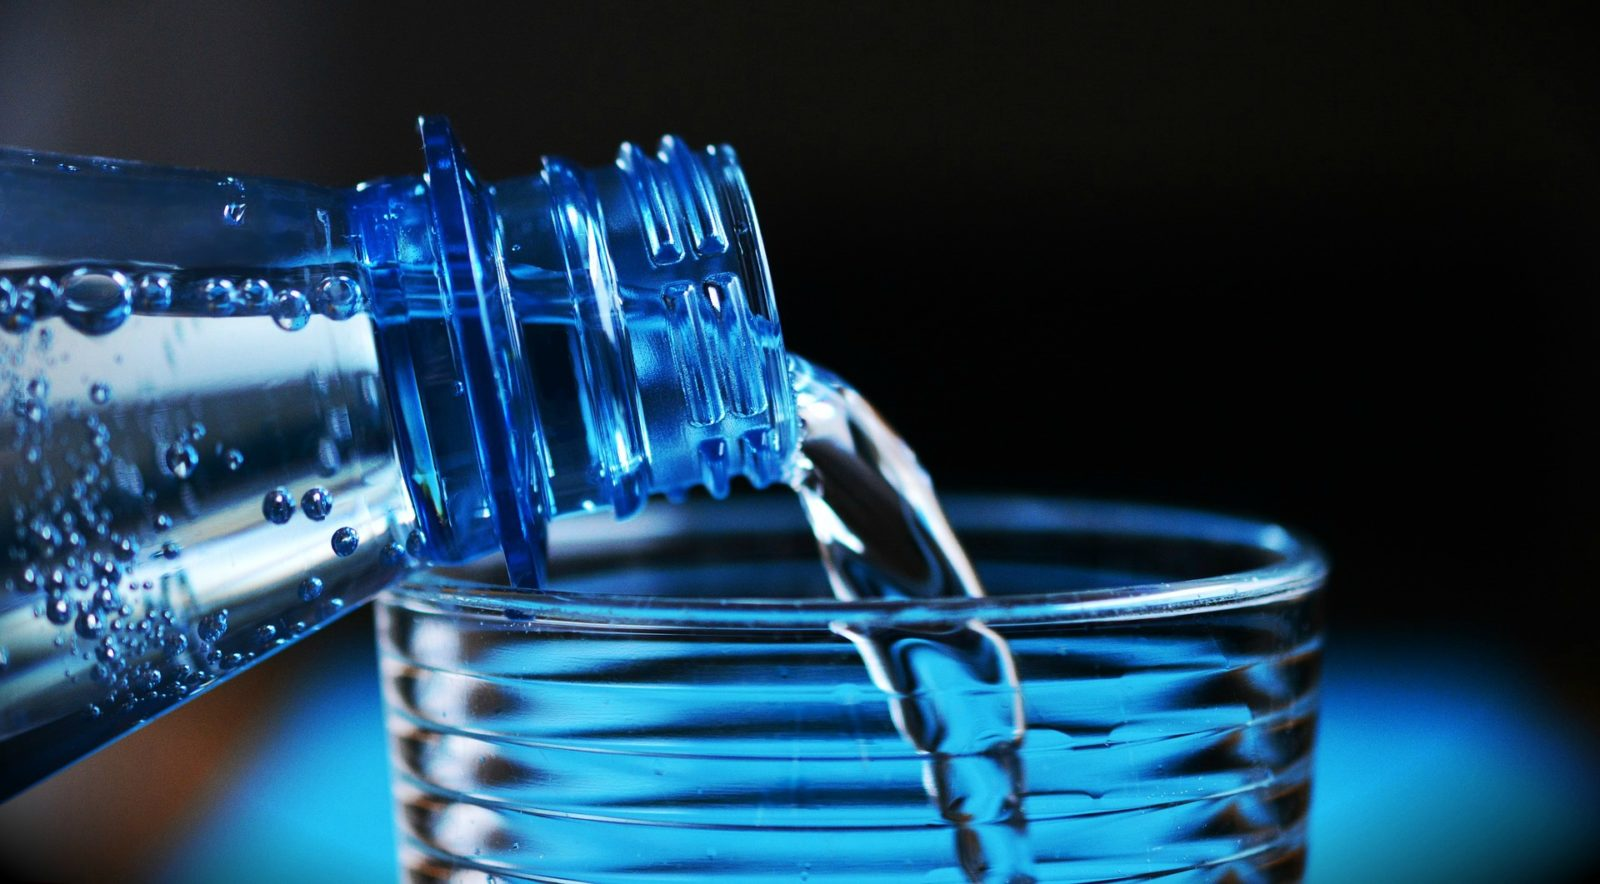 Reducing fluid intake does not reduce the risk of leakage.